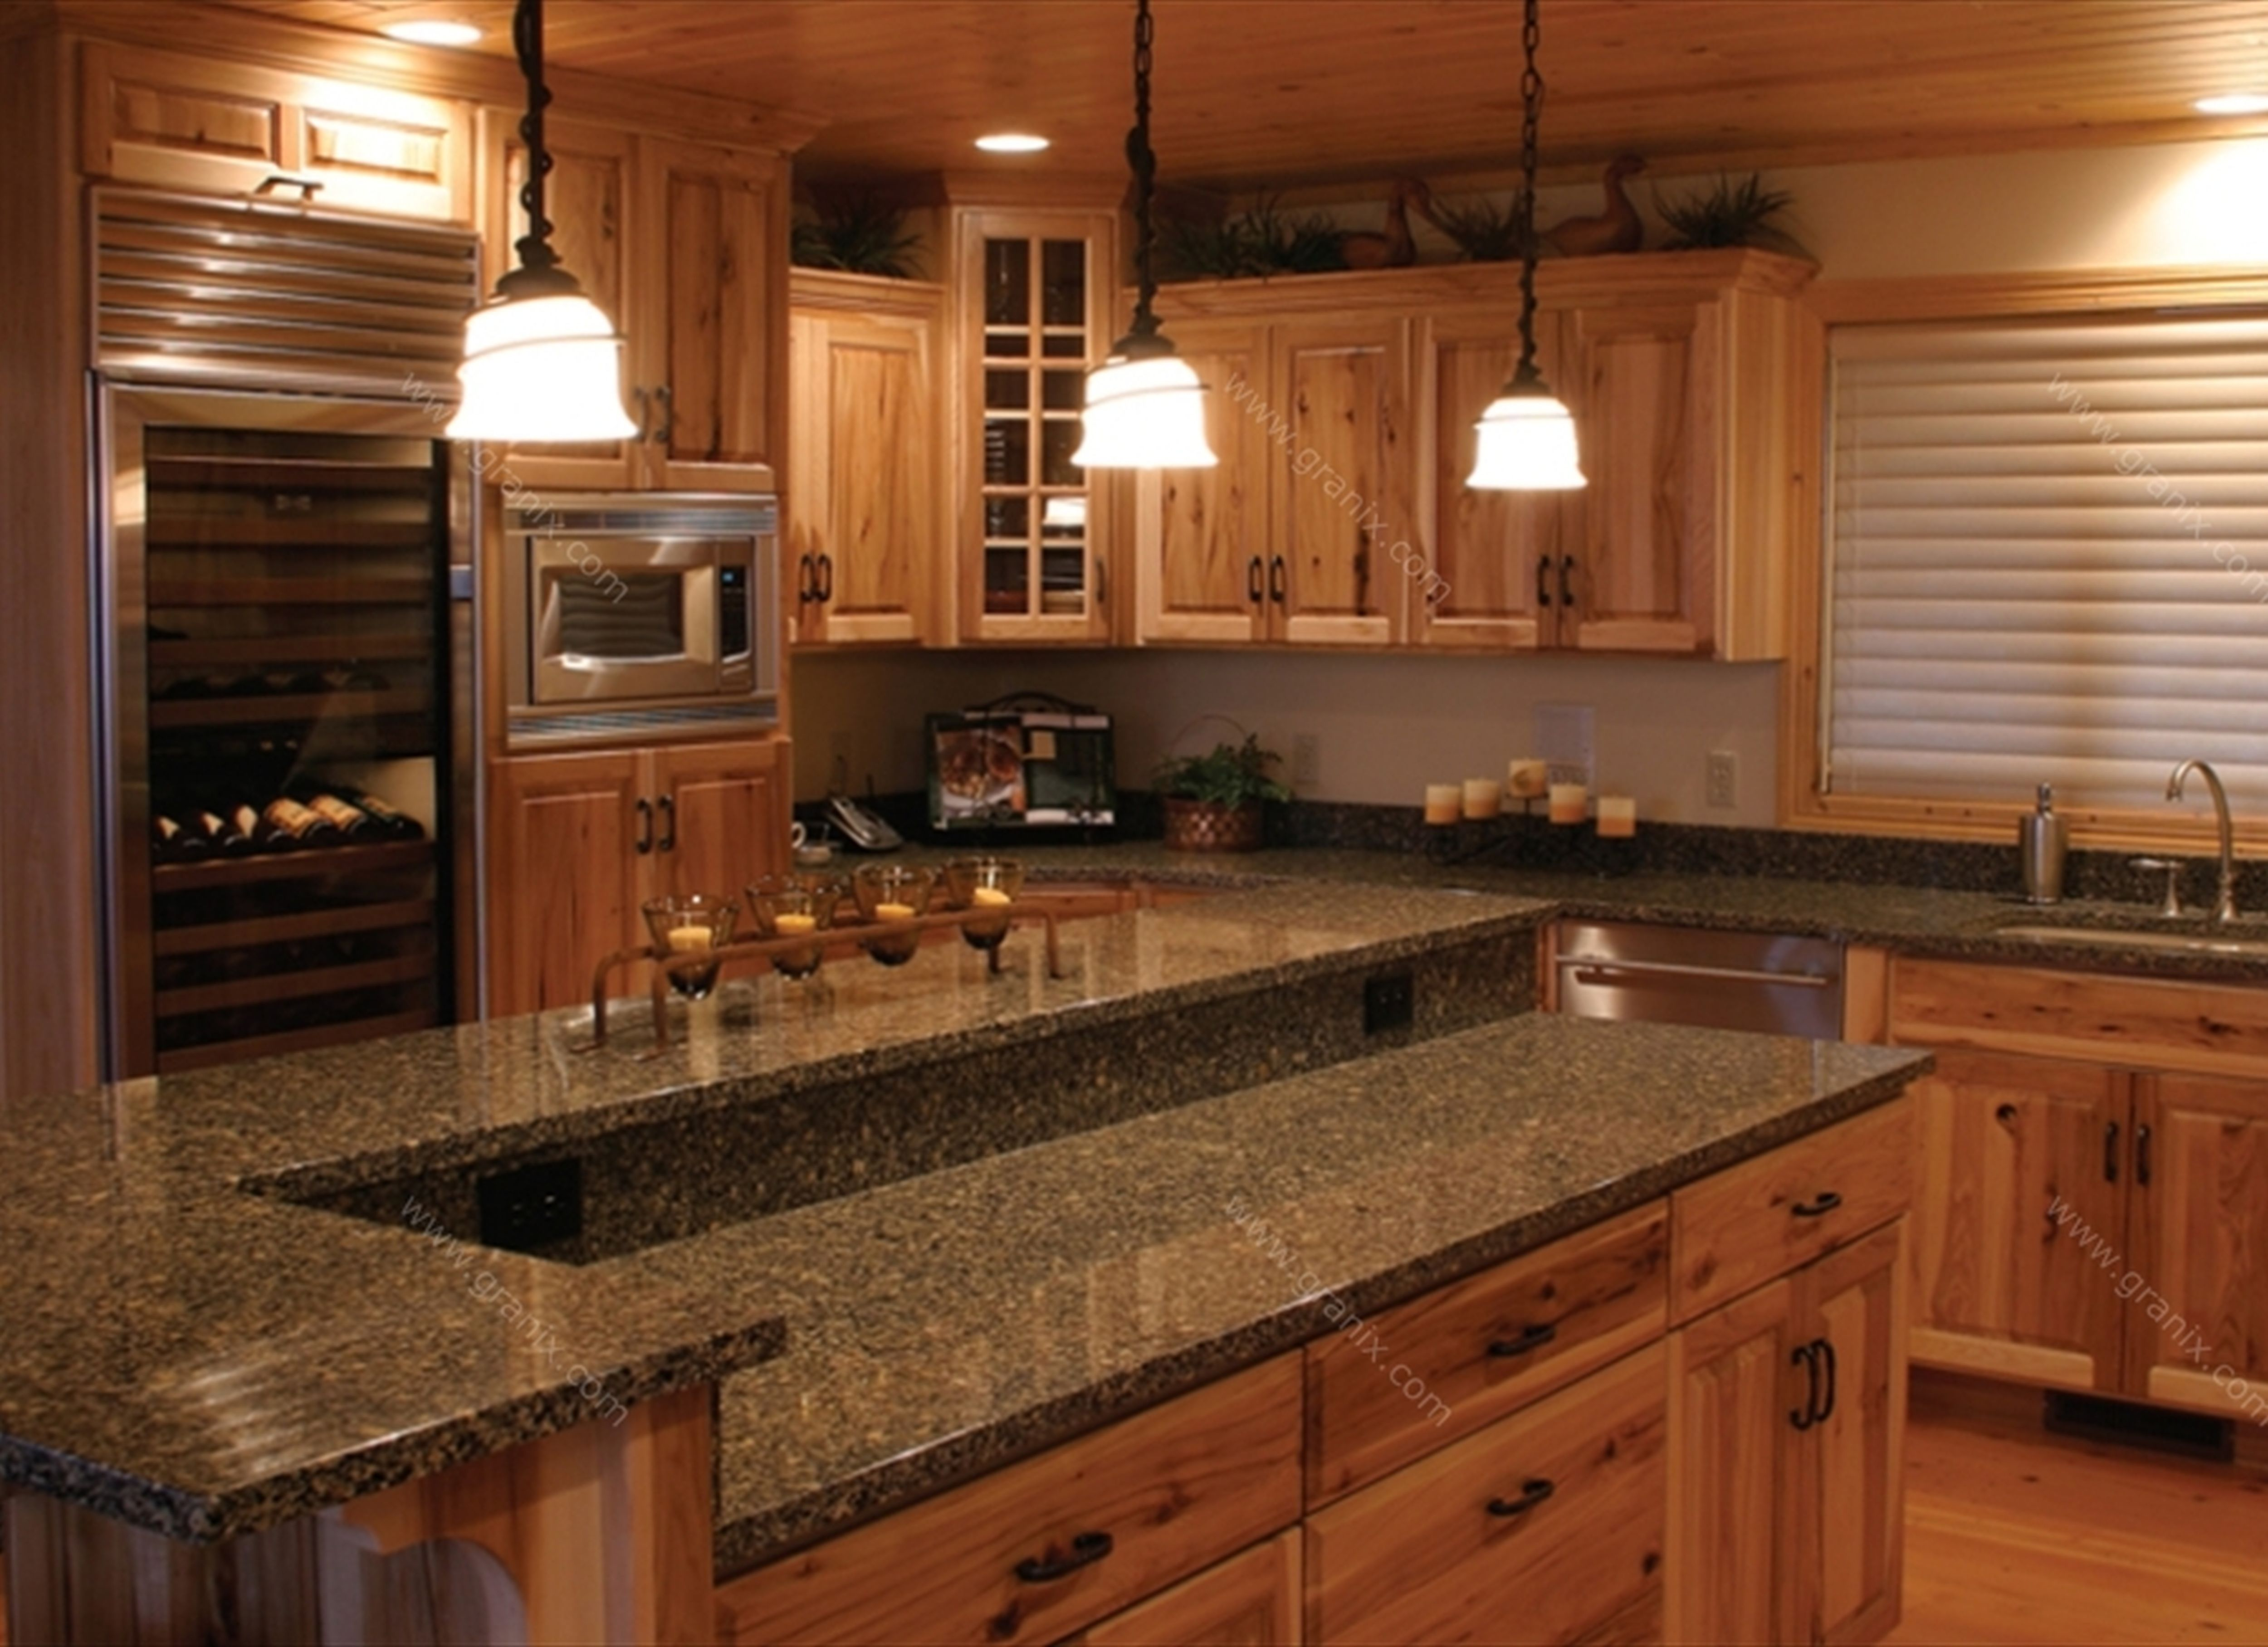 Best kitchen cabinets lowes -  Lowes Kitchen Cabinets Kitchen Cabinets Lowes 25 Best Ideas About Lowes Kitchen Cabinets On Pinterest Dream